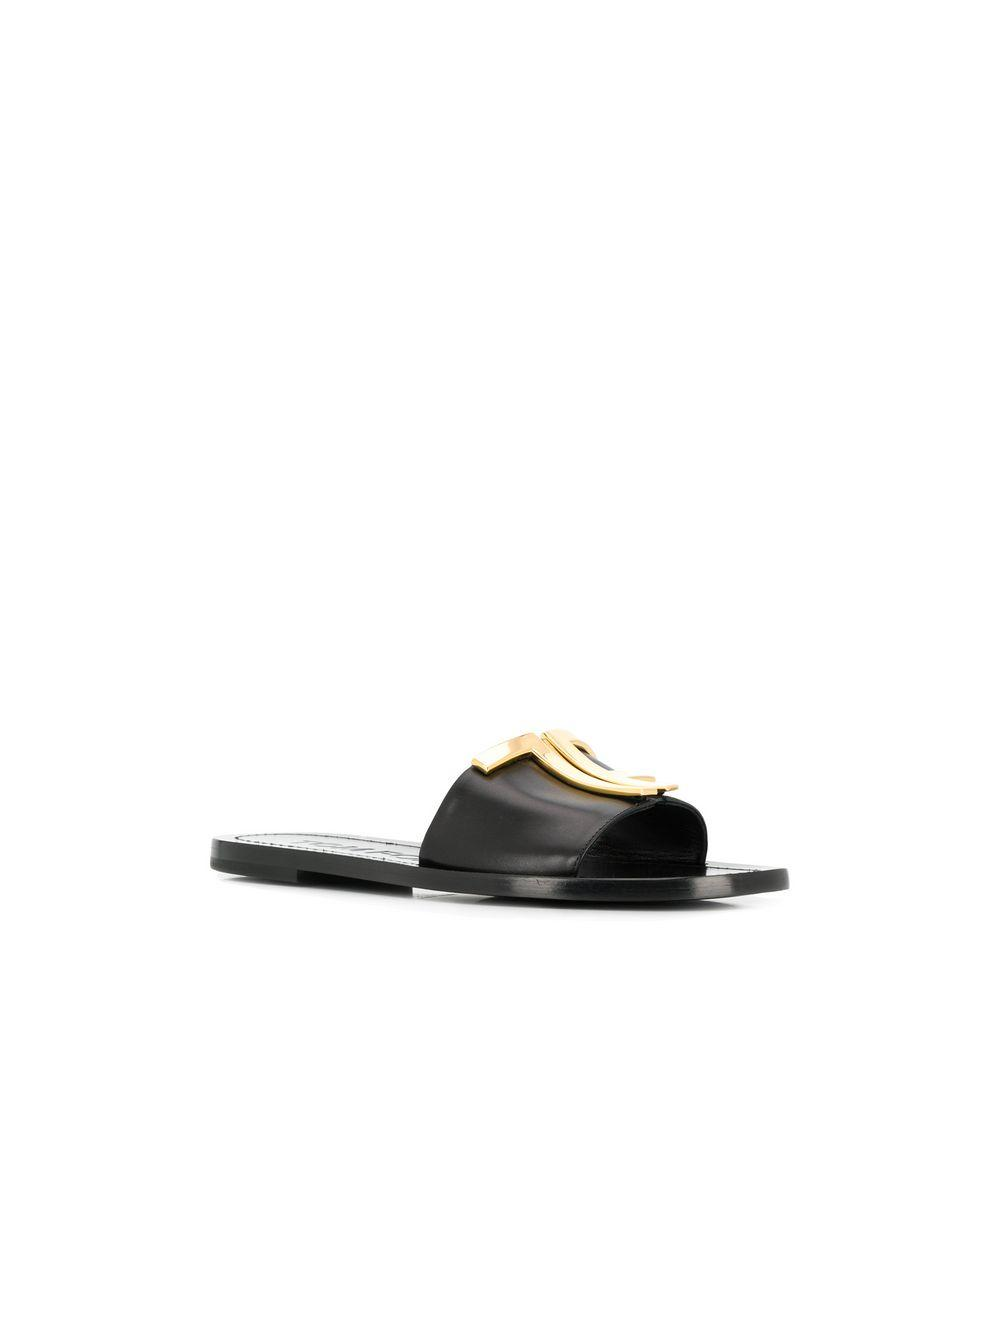 0bbf6c3a9d69 Lyst - Tom Ford Logo Plaque Slides in Black - Save 11%